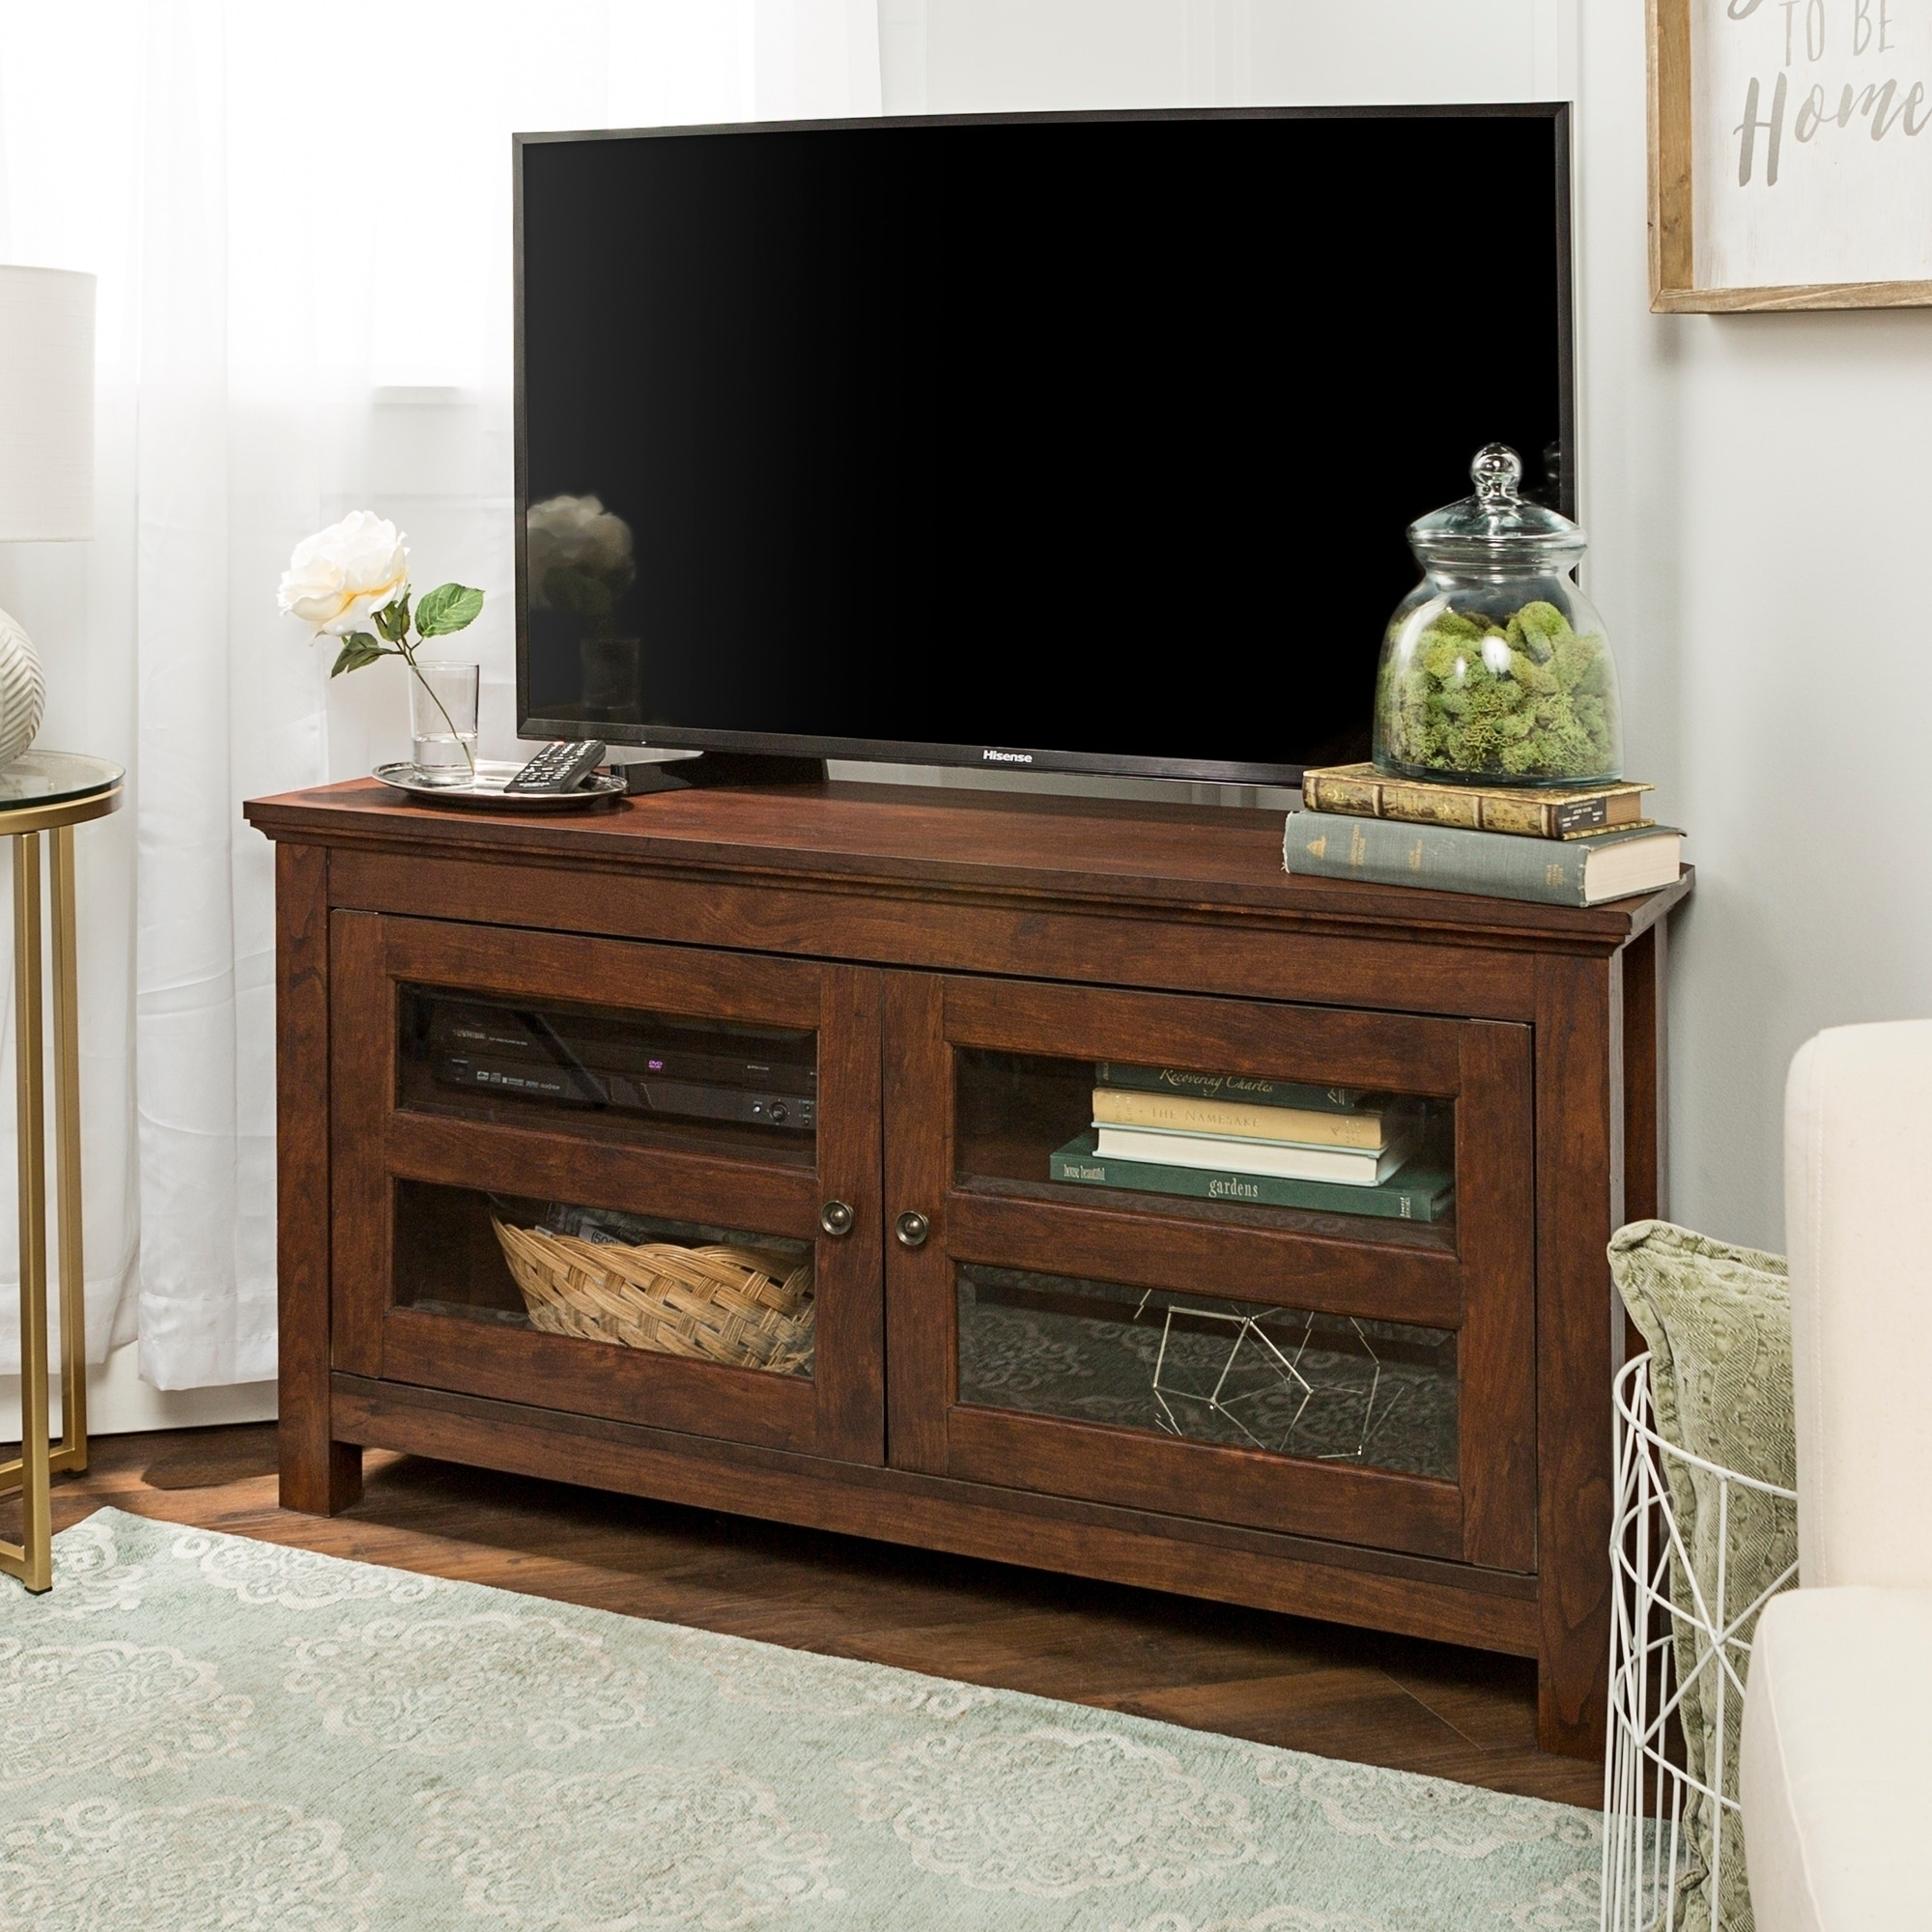 Corner Tv Stand Designs : Creative diy corner tv stand designs and ideas for your home